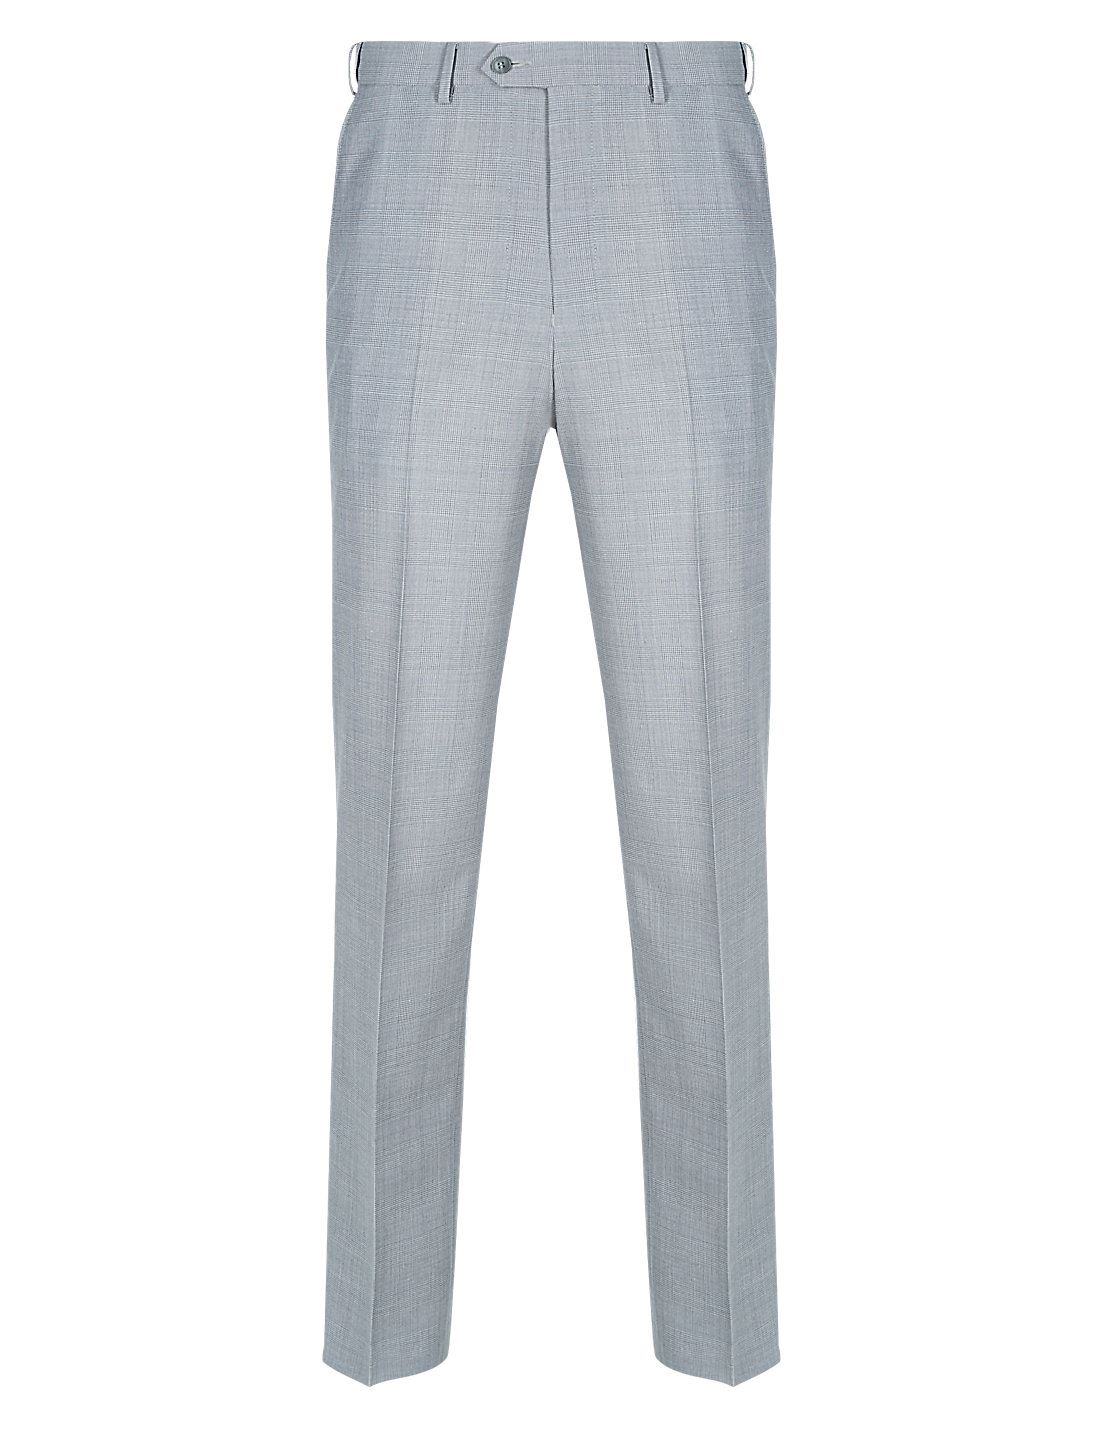 EX-M-amp-S-Marks-And-Spencer-Supercrease-Active-Waistband-Trousers thumbnail 5